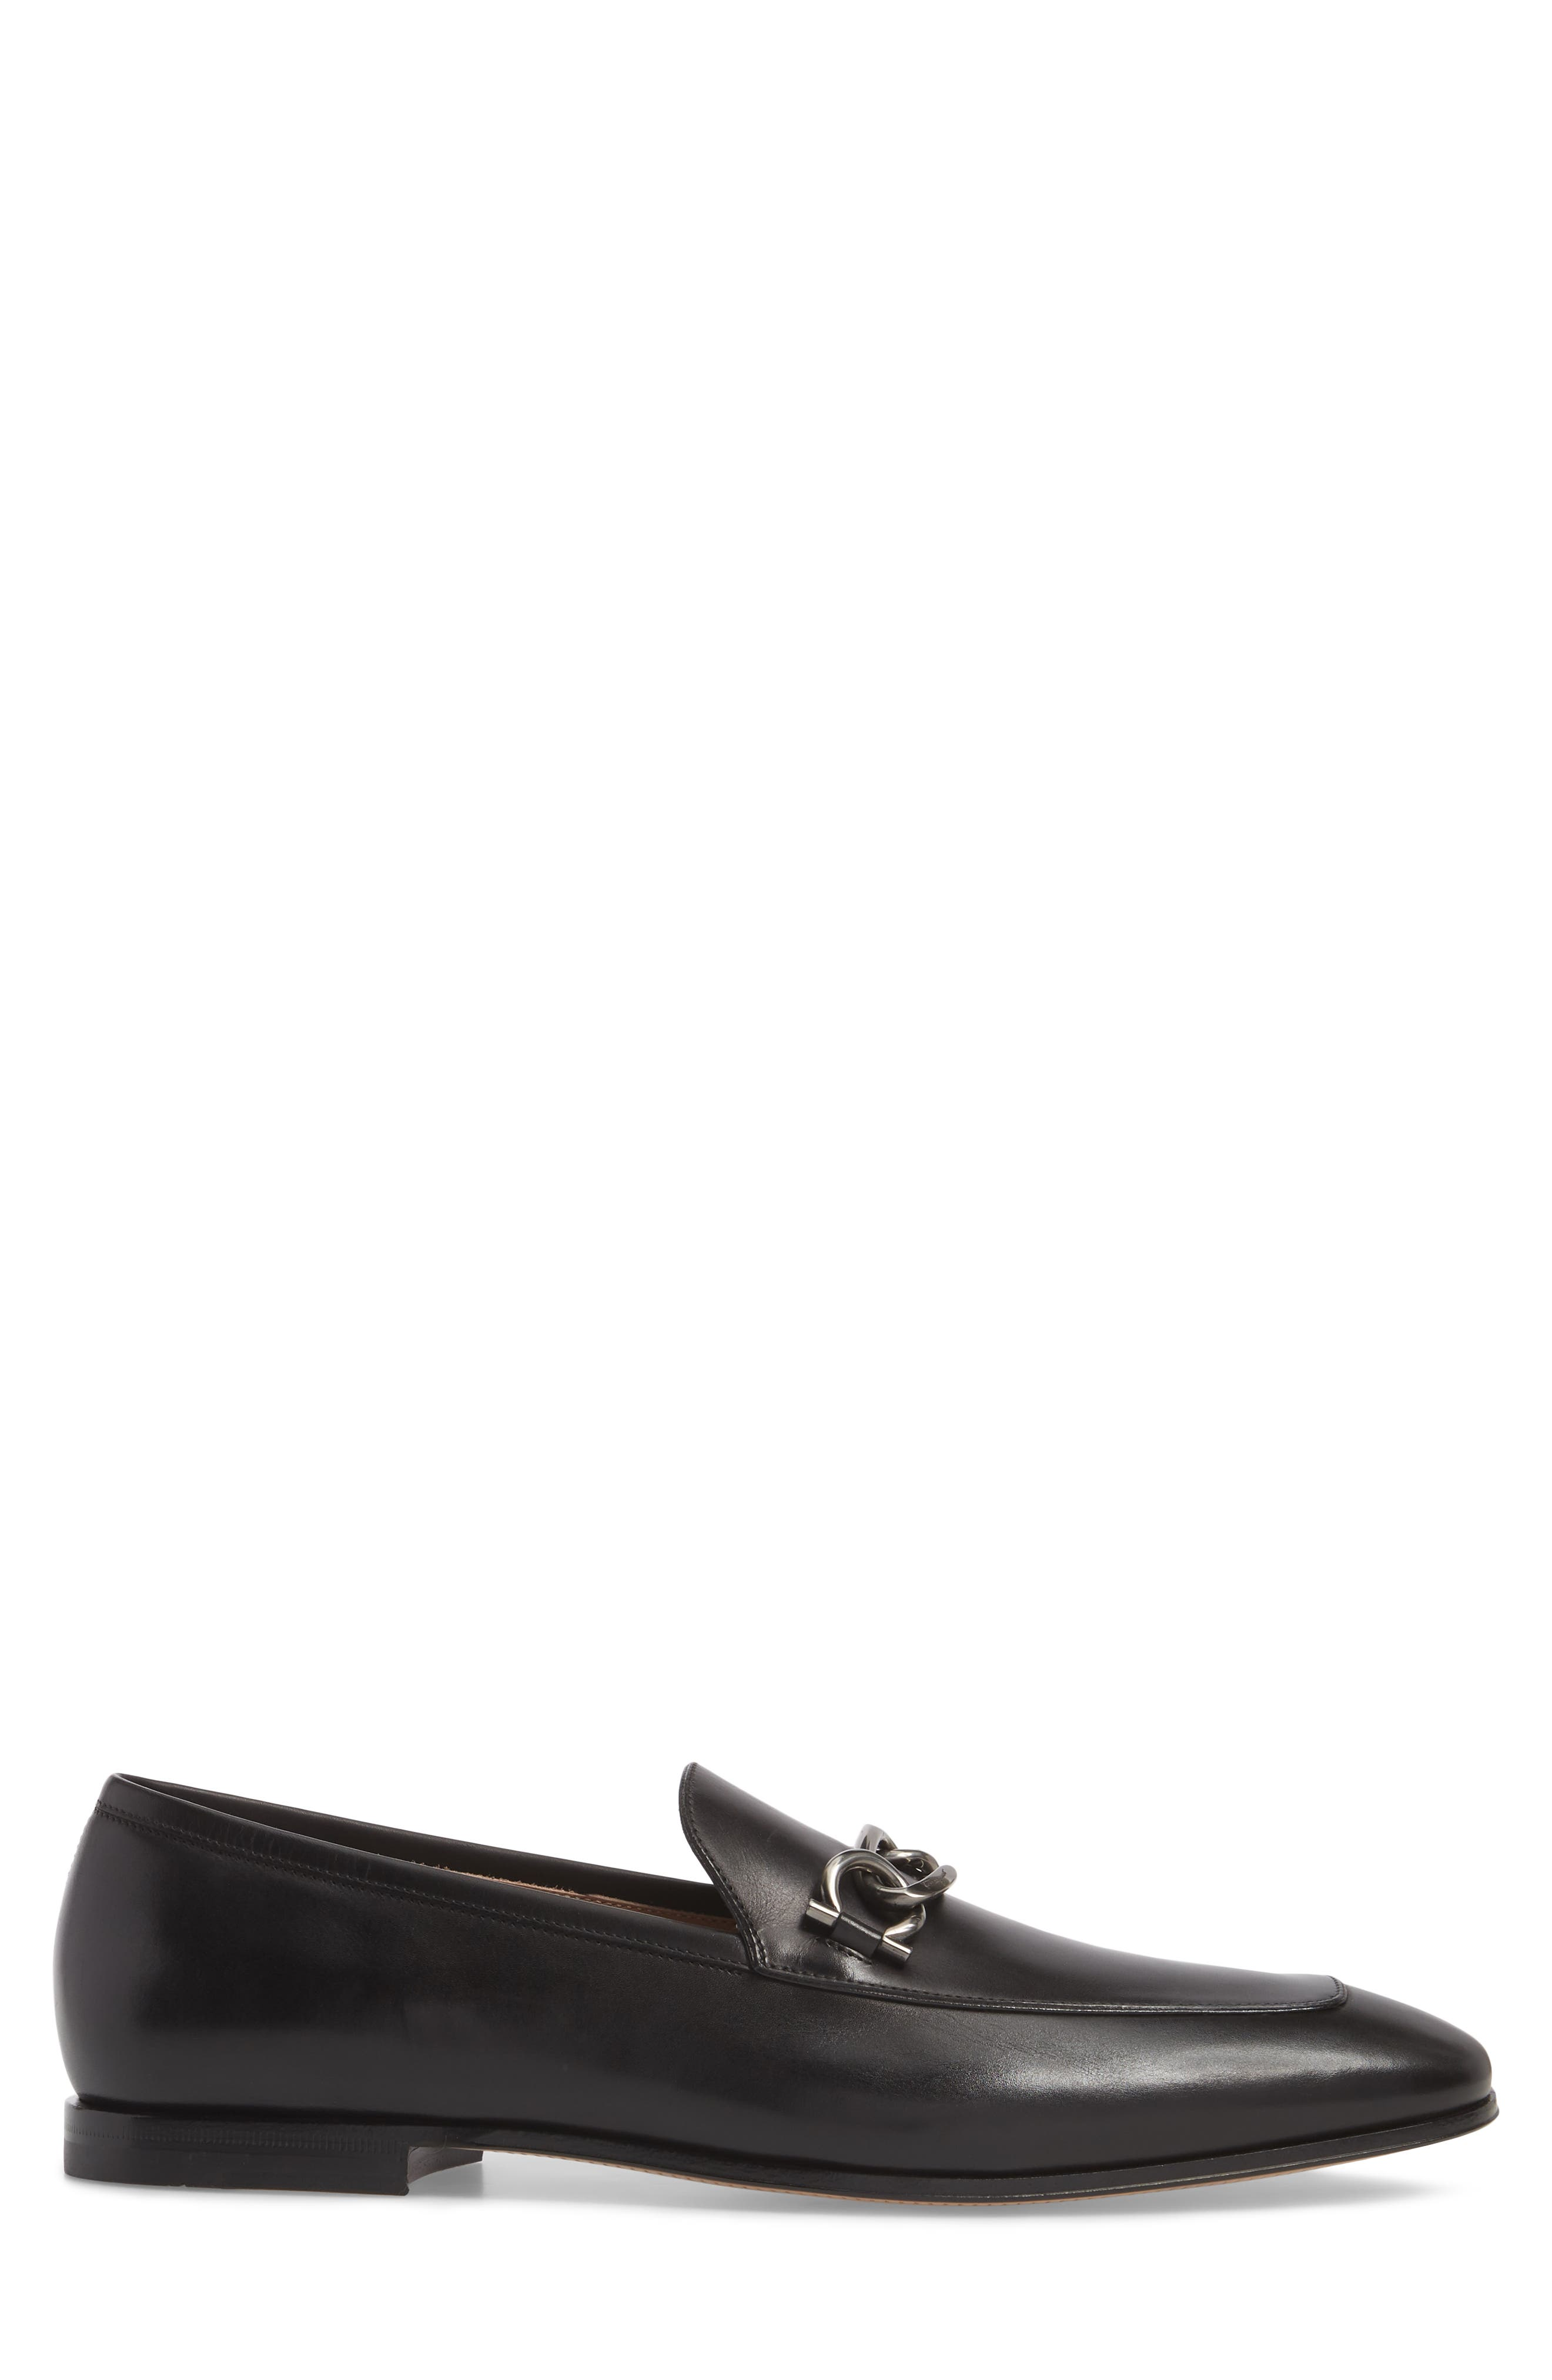 Boy Chain Bit Loafer,                             Alternate thumbnail 3, color,                             NERO LEATHER